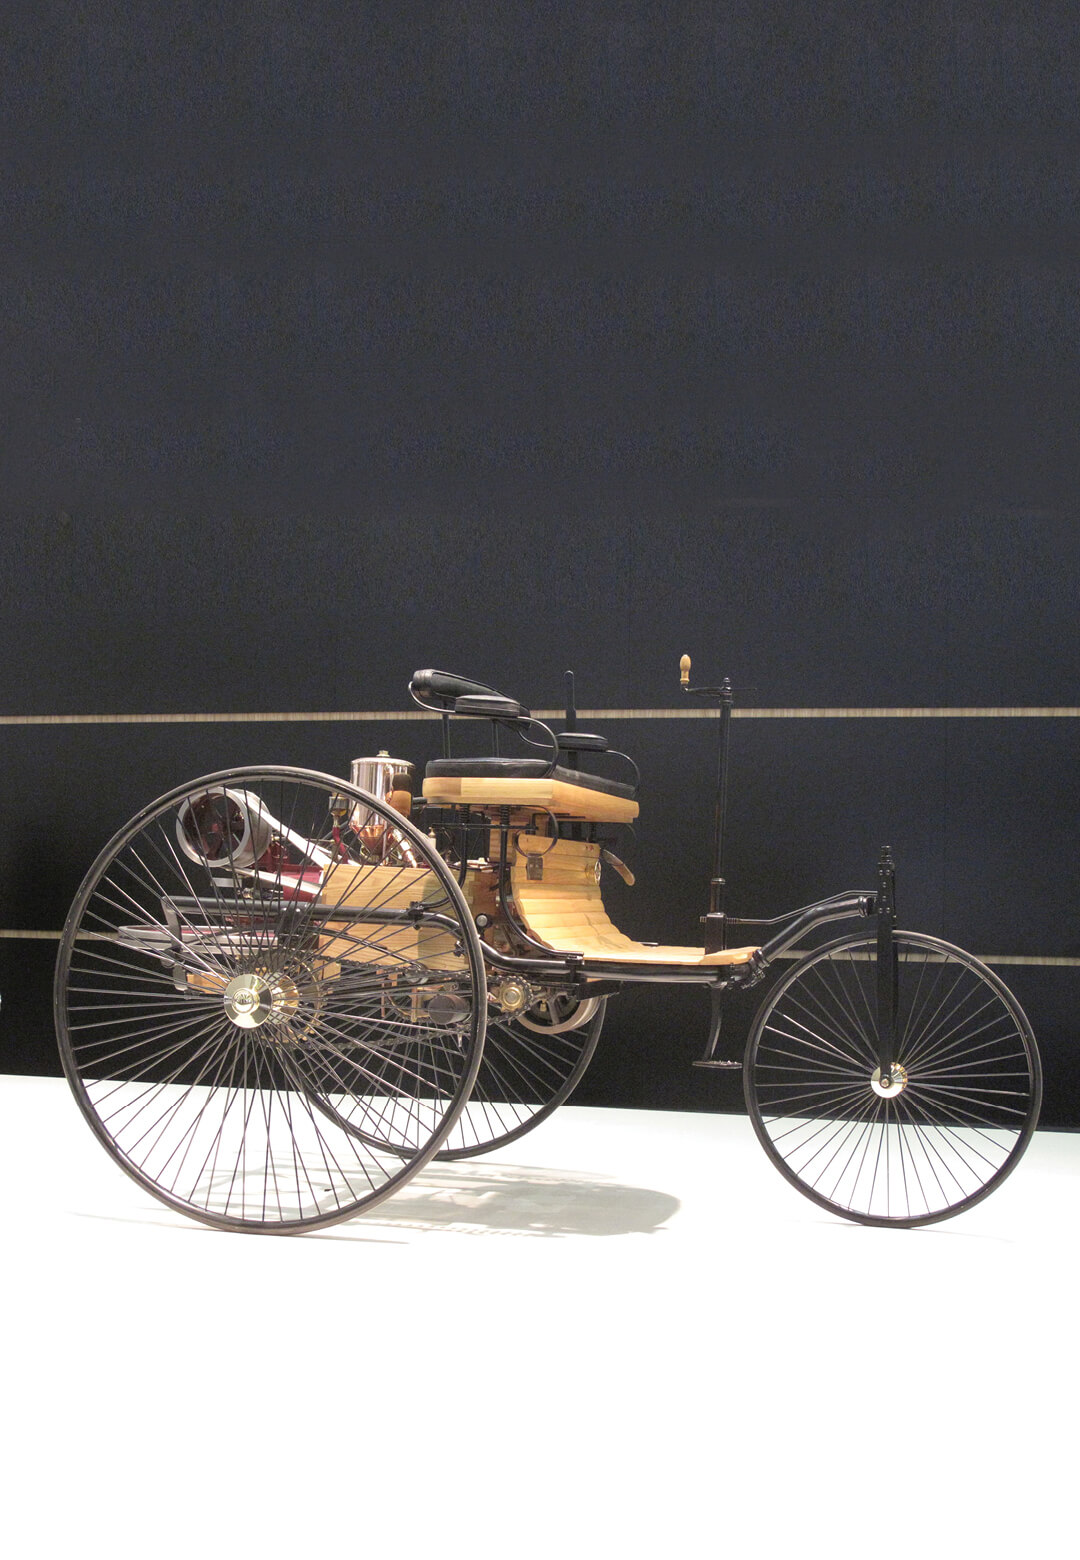 The Benz Patent-Motorwagen replica at Mercedes-Benz Museum Stuttgart | Freewheeling | Gautam Sen and Avik Chattopadhyay | STIRworld